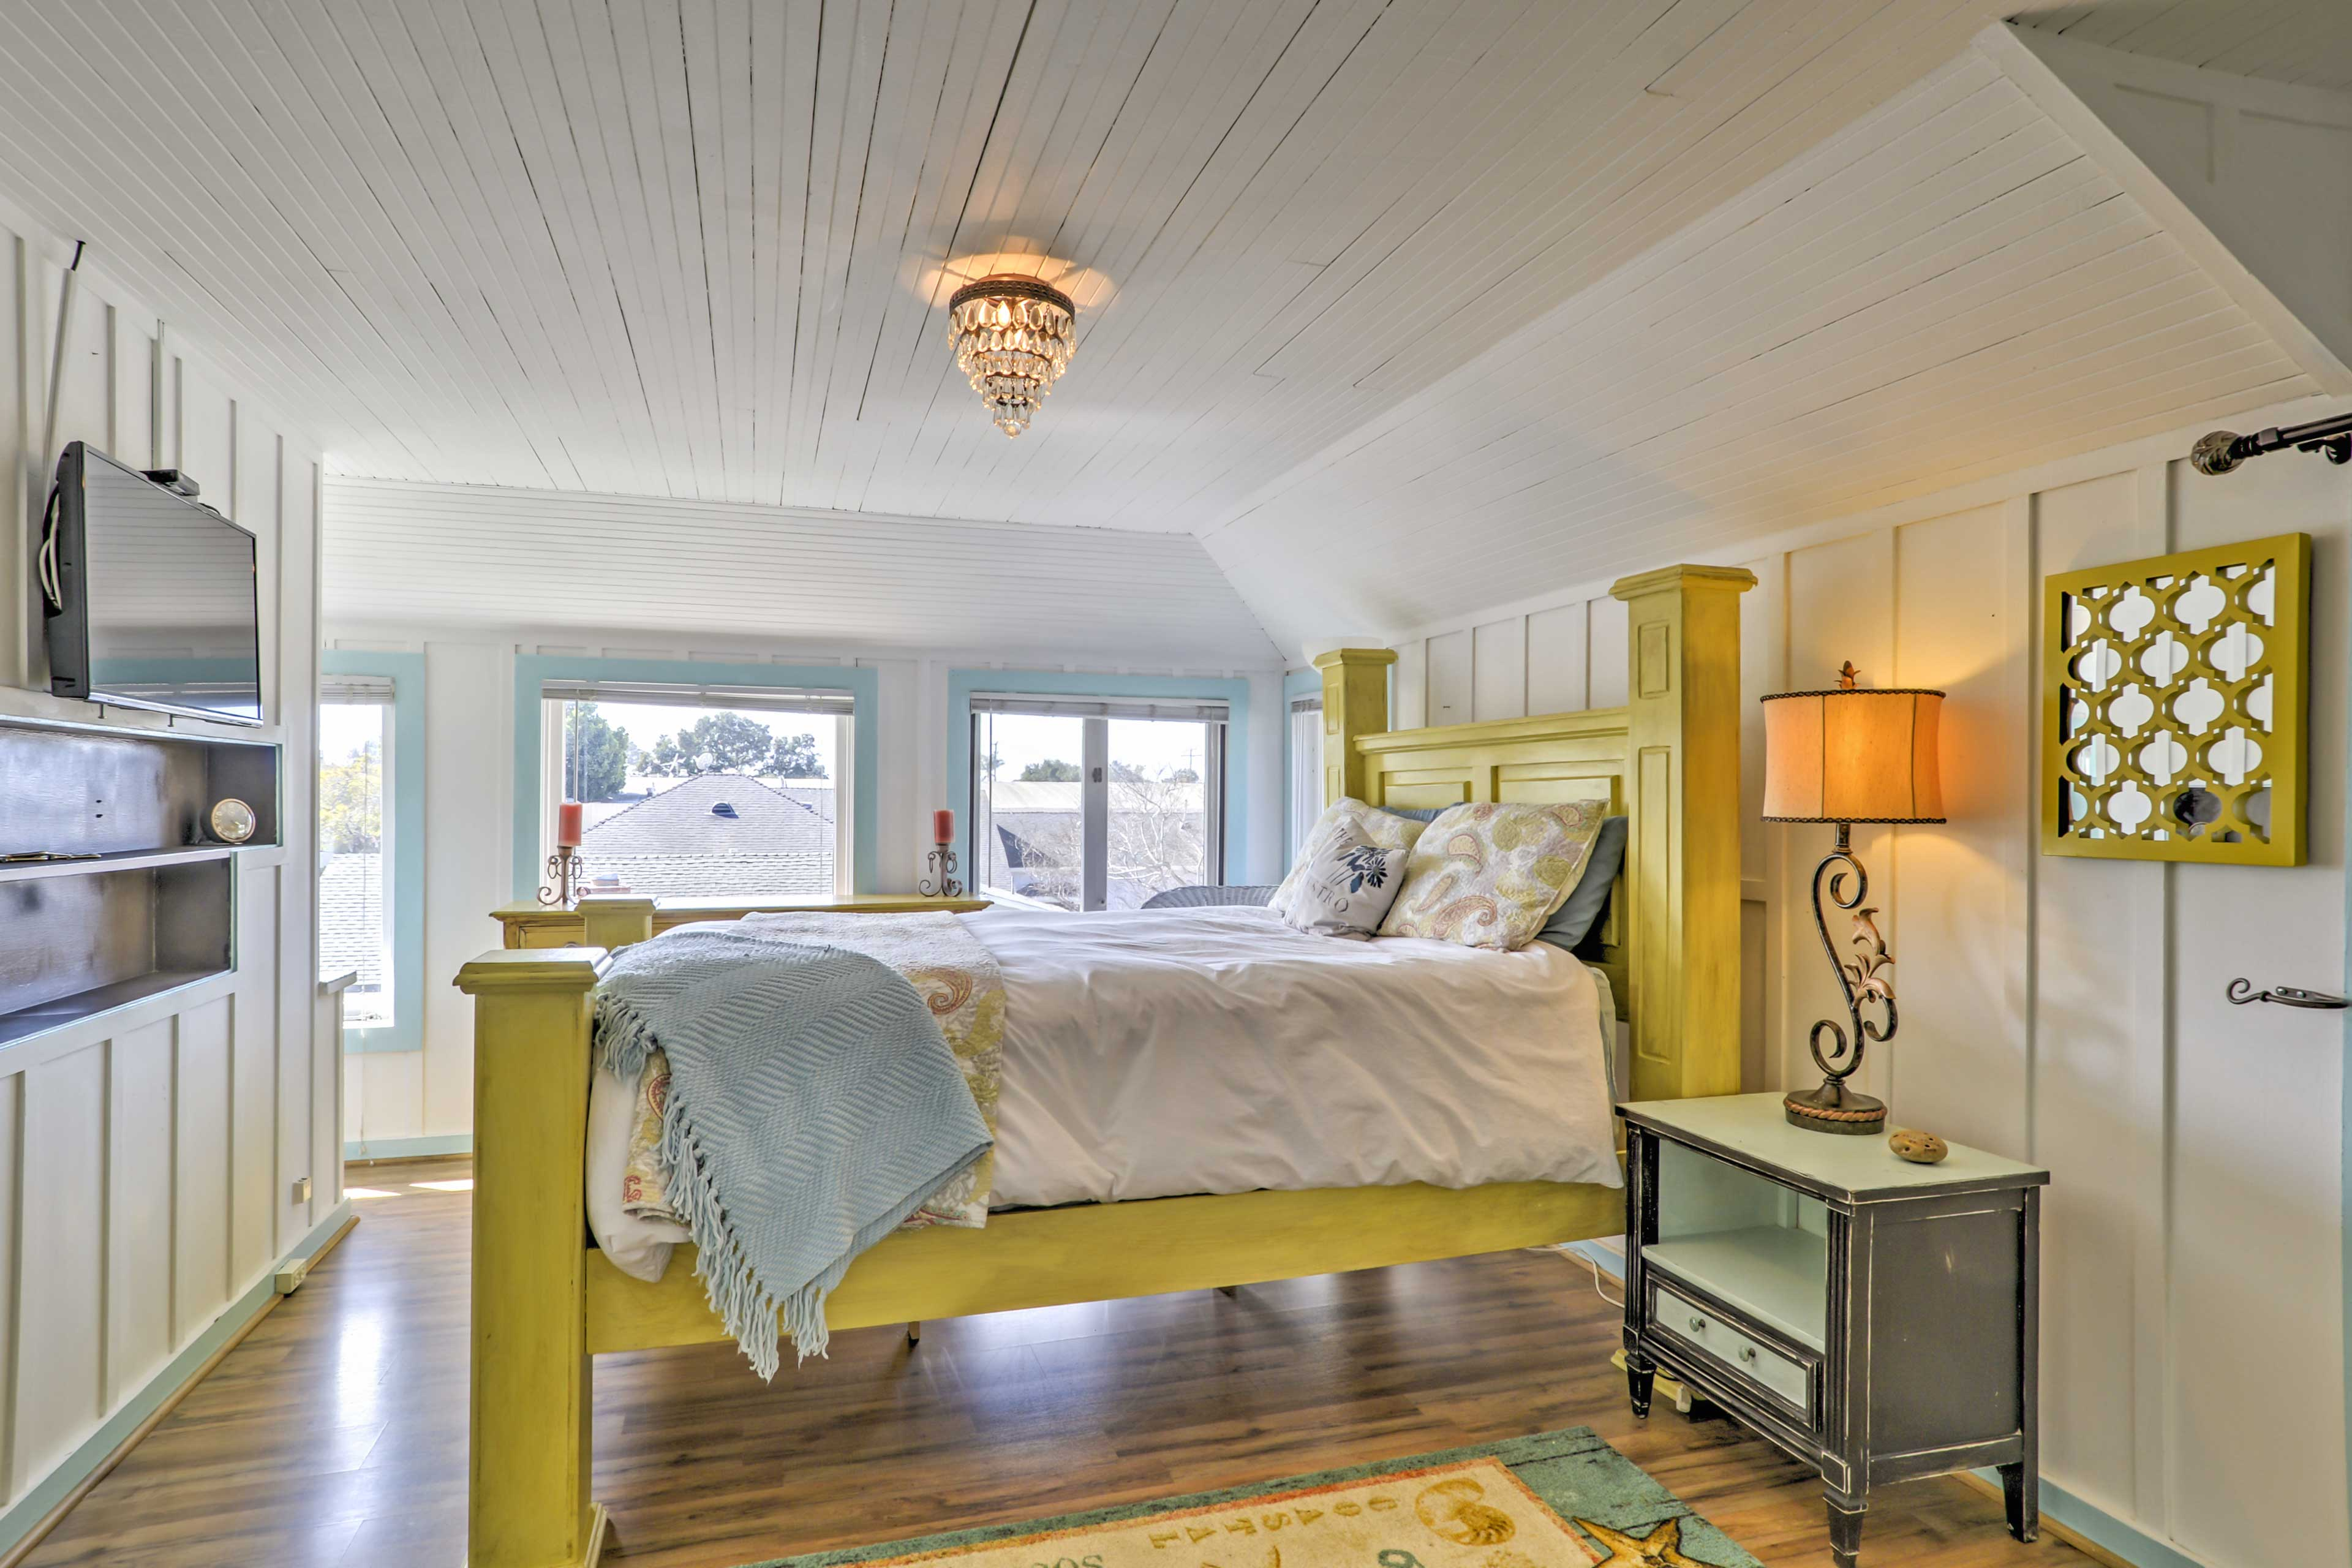 The bedroom offers a plush queen-sized bed.